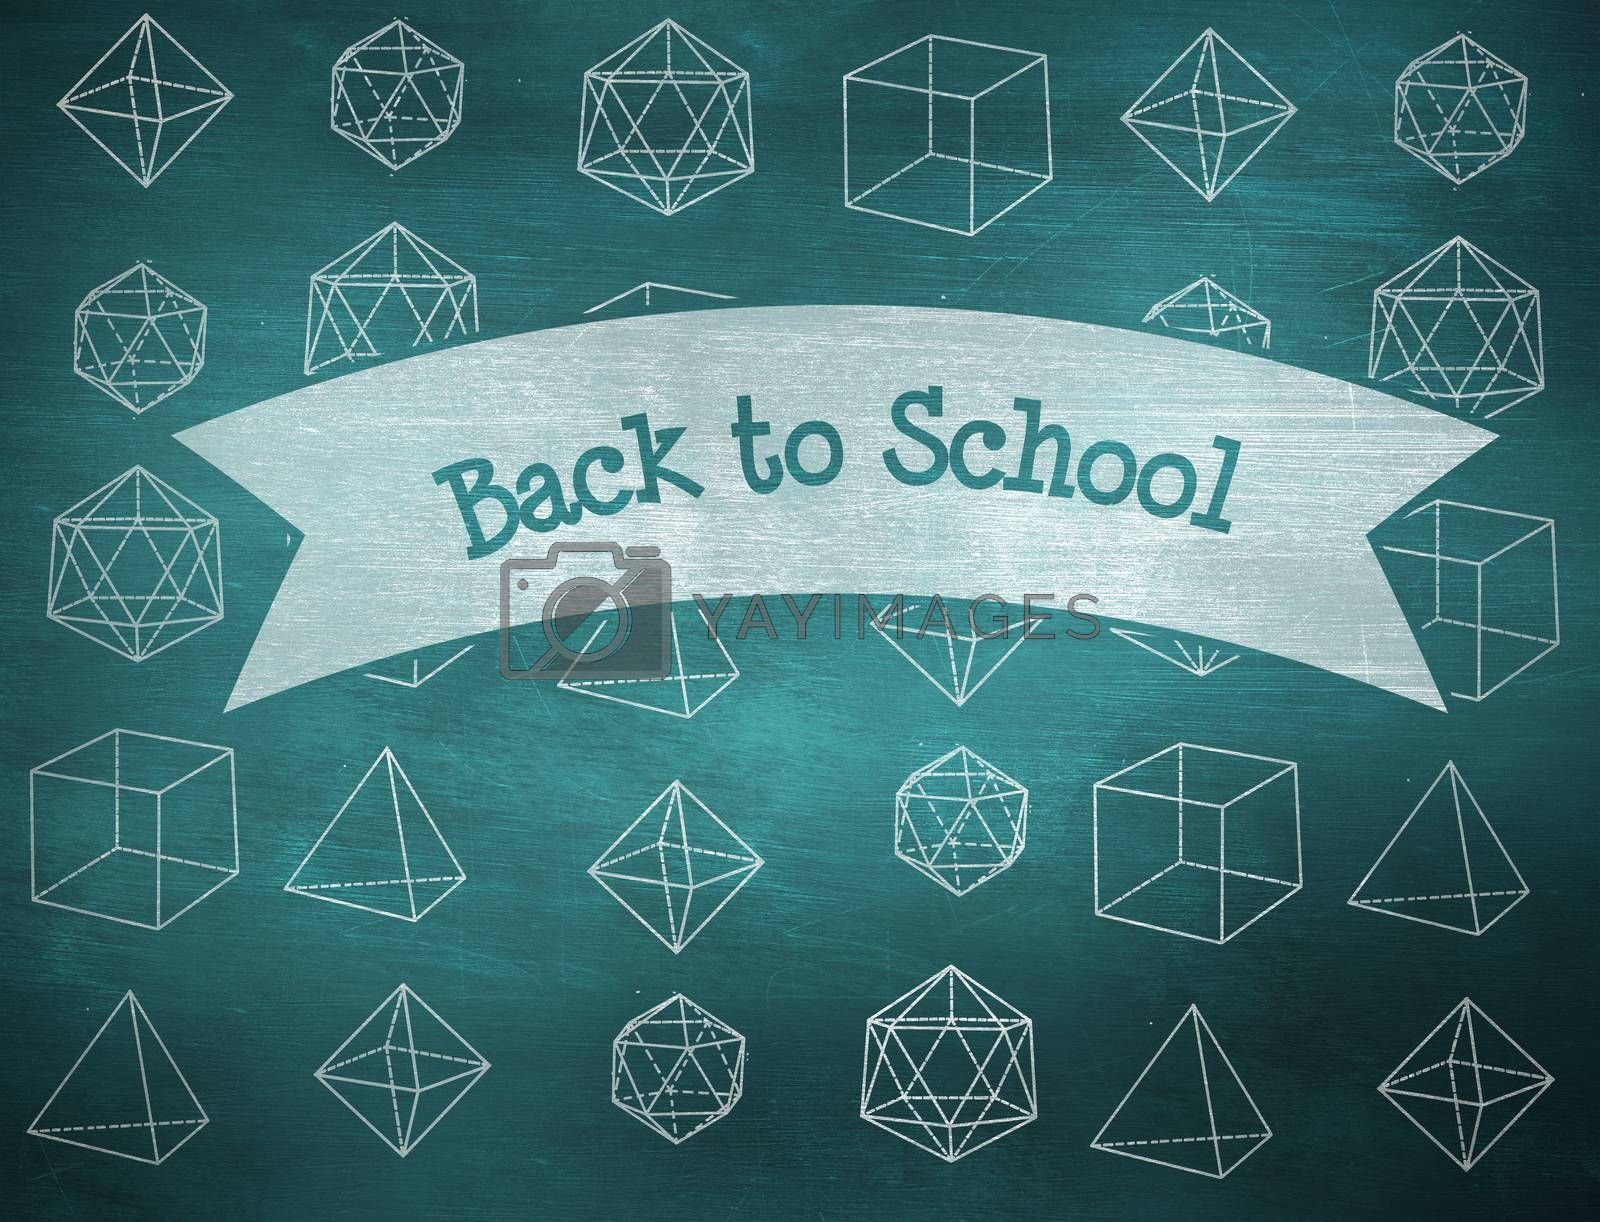 The word back to school and geometric shape against green chalkboard